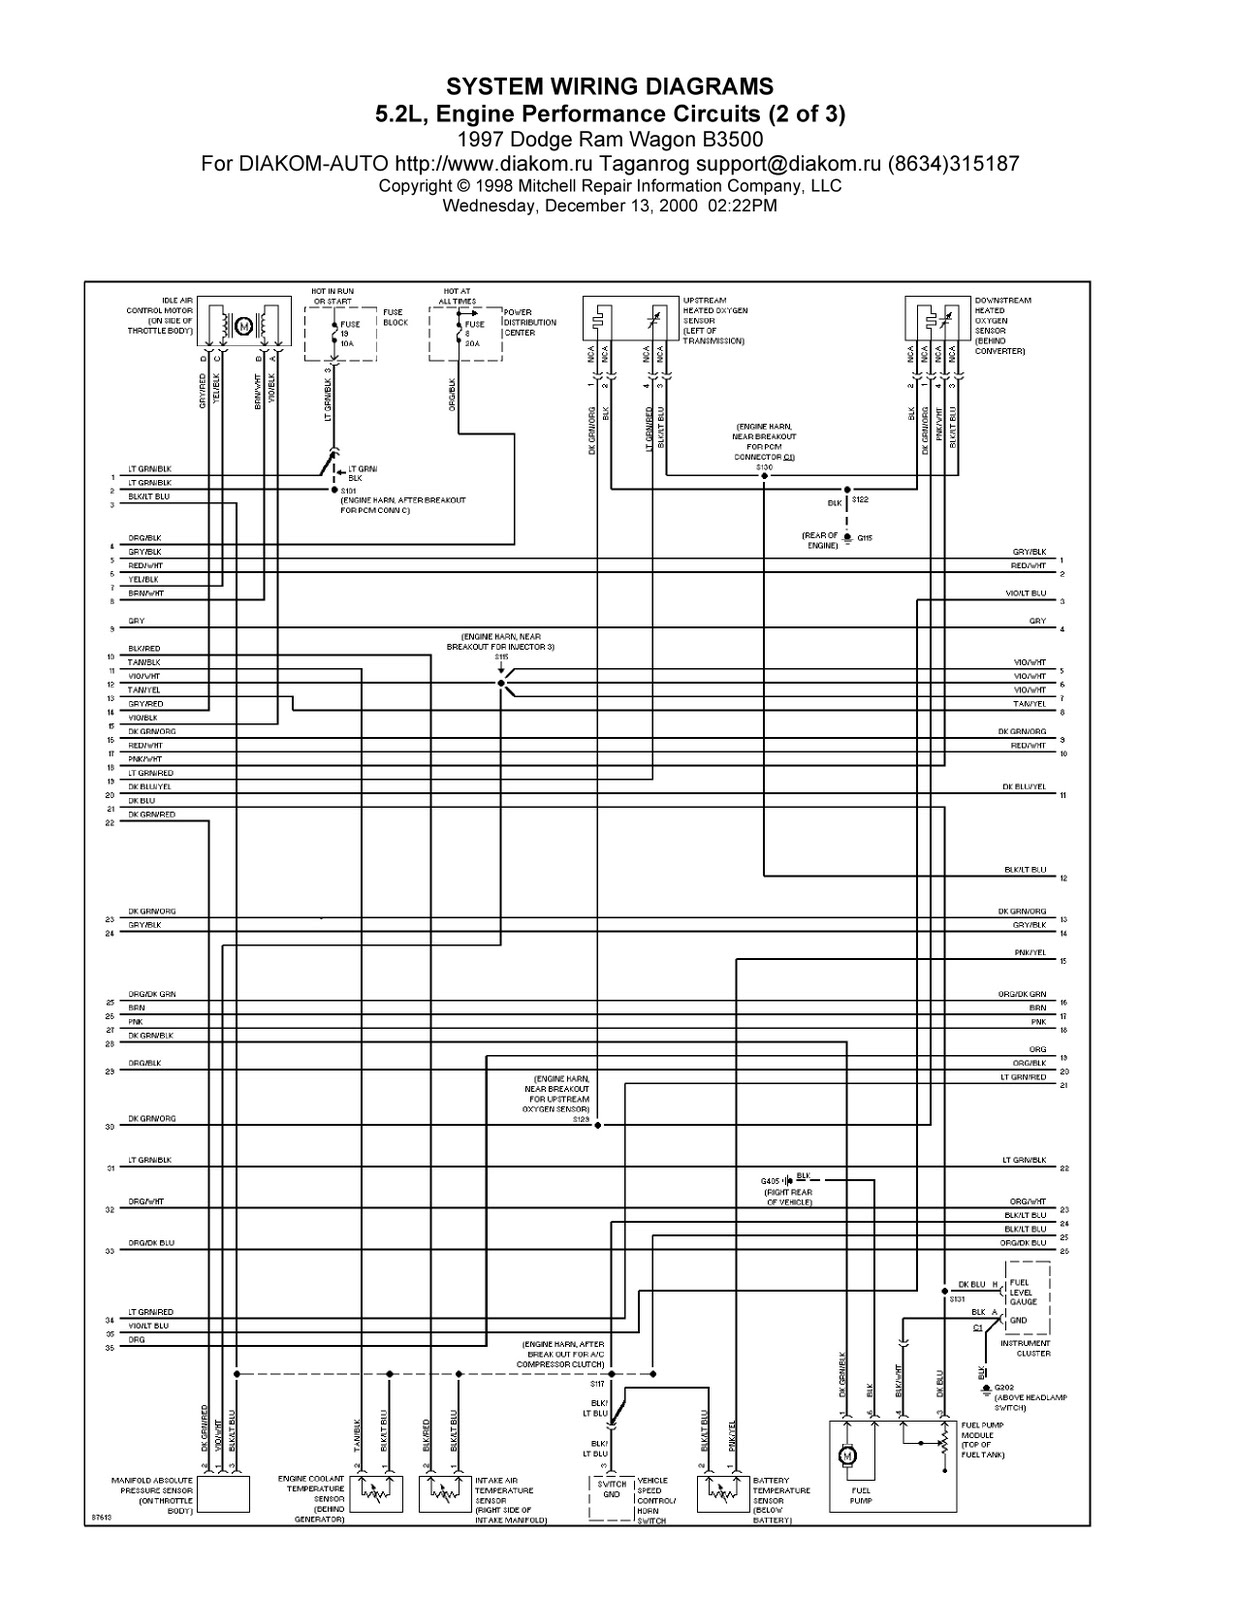 hight resolution of 1997 dodge ram wagon b3500 system wiring diagram 5 2l 1997 dodge ram wiring diagram 97